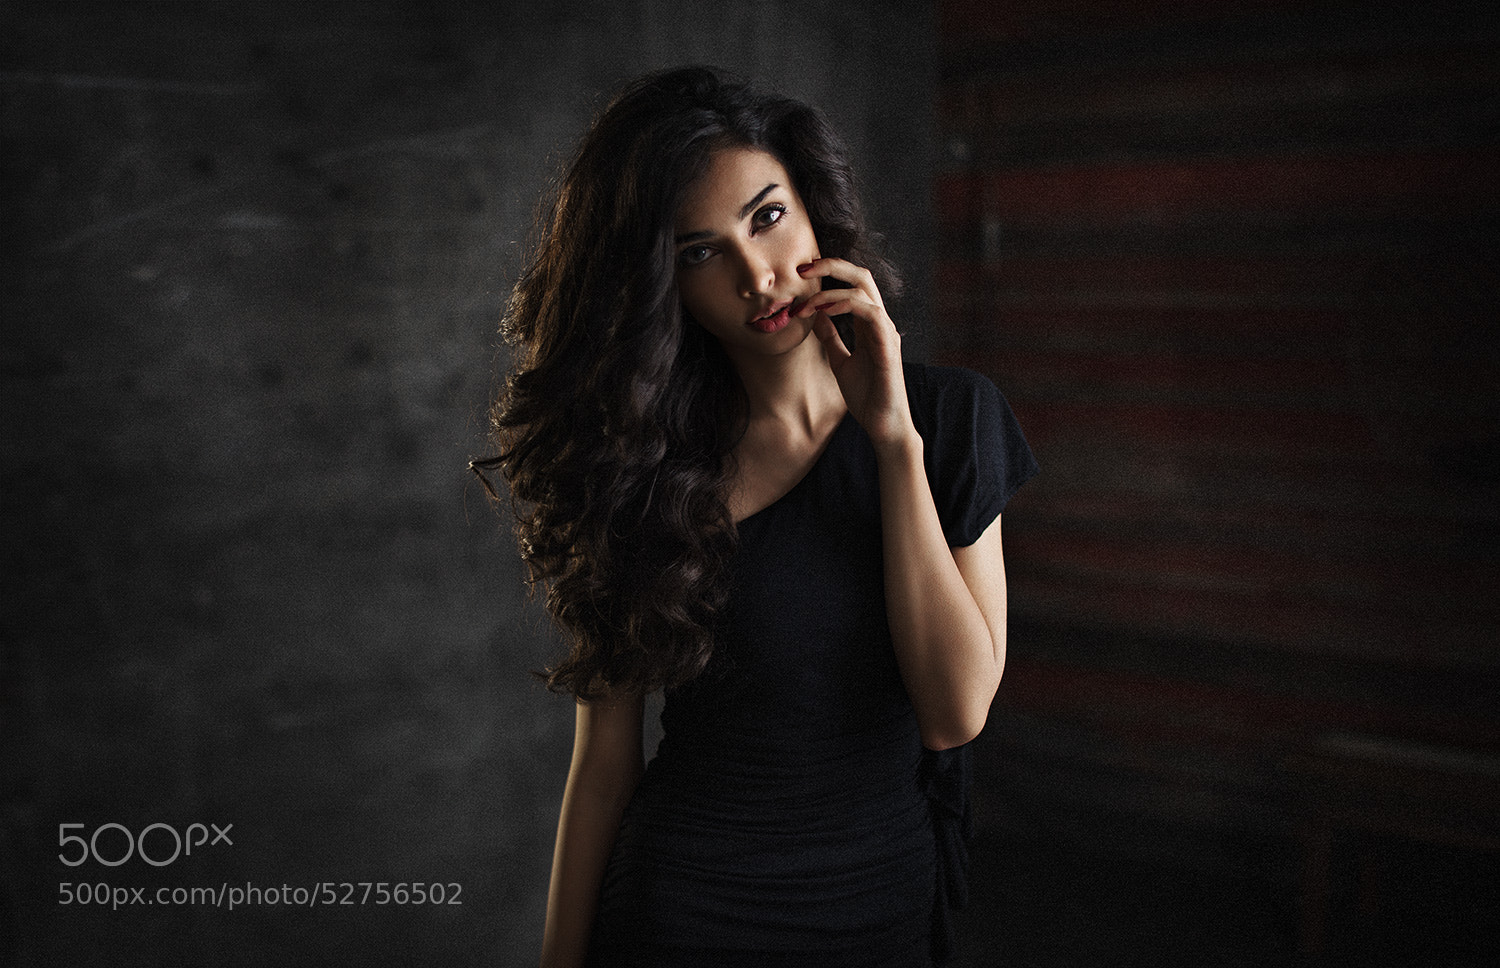 Photograph Jariso by The Photo Fiend on 500px